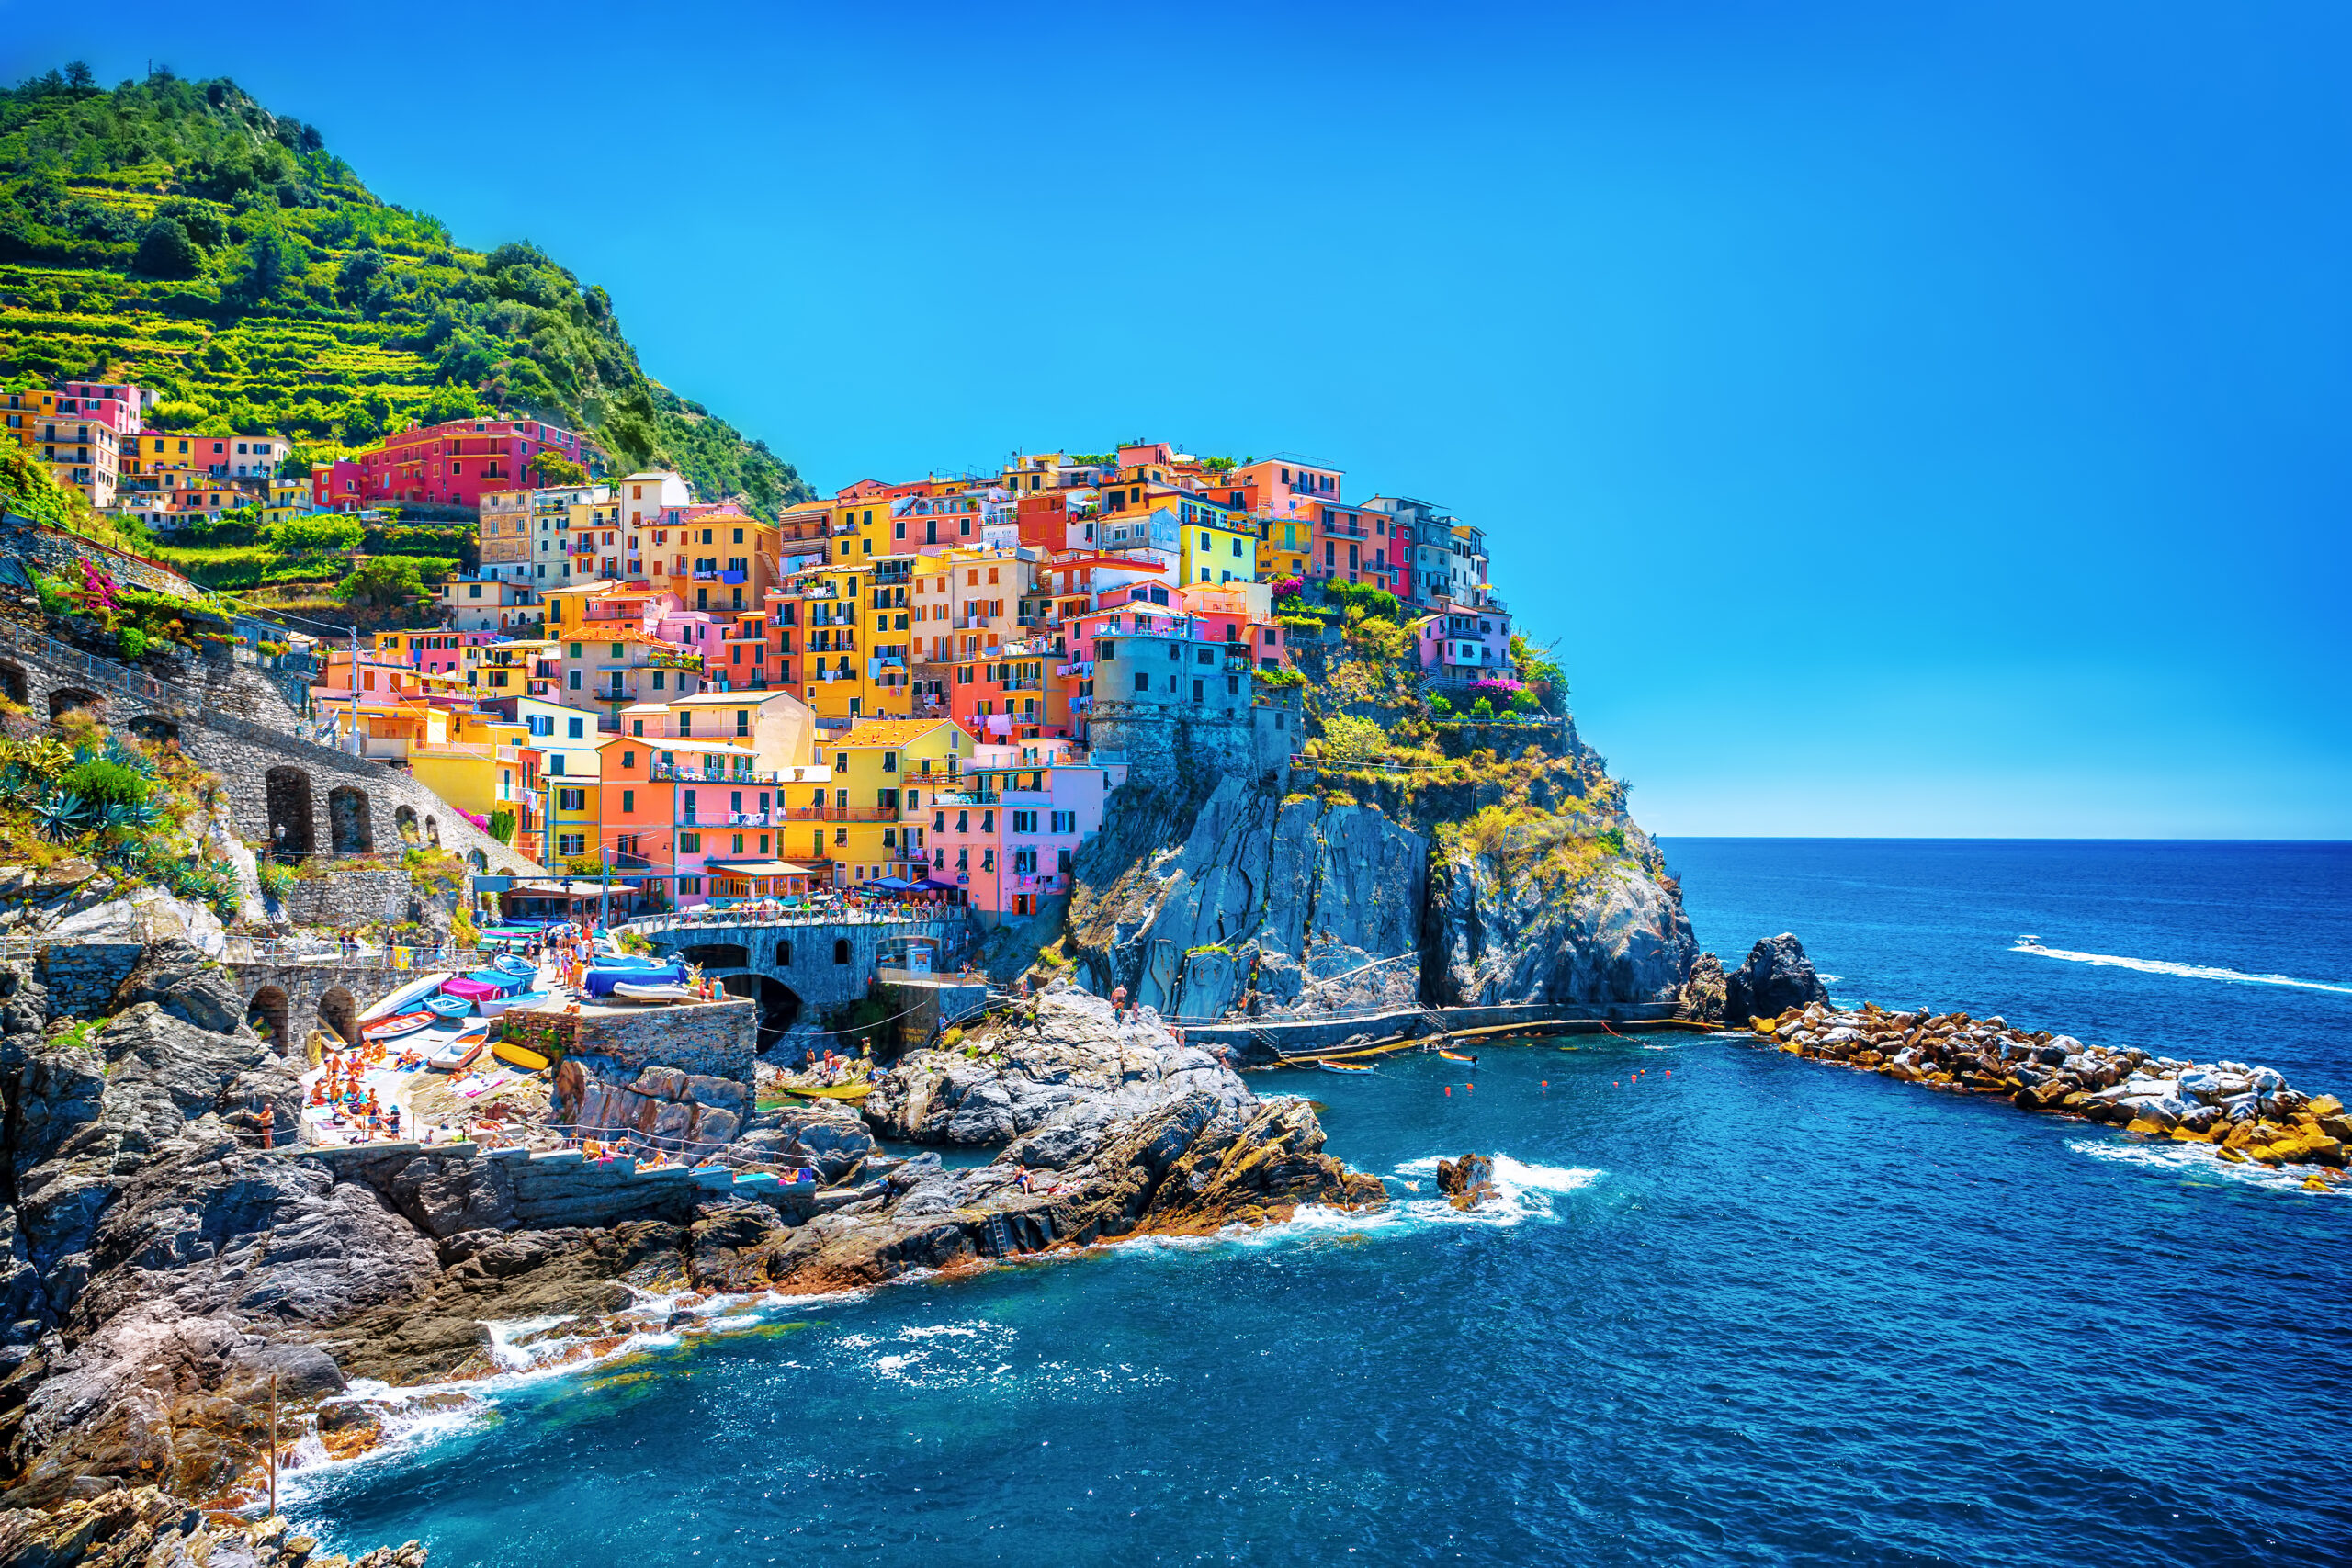 Cinque Terre Italy PhotoCredit ShutterStock Ann Om scaled jpg?time=1603858004.'